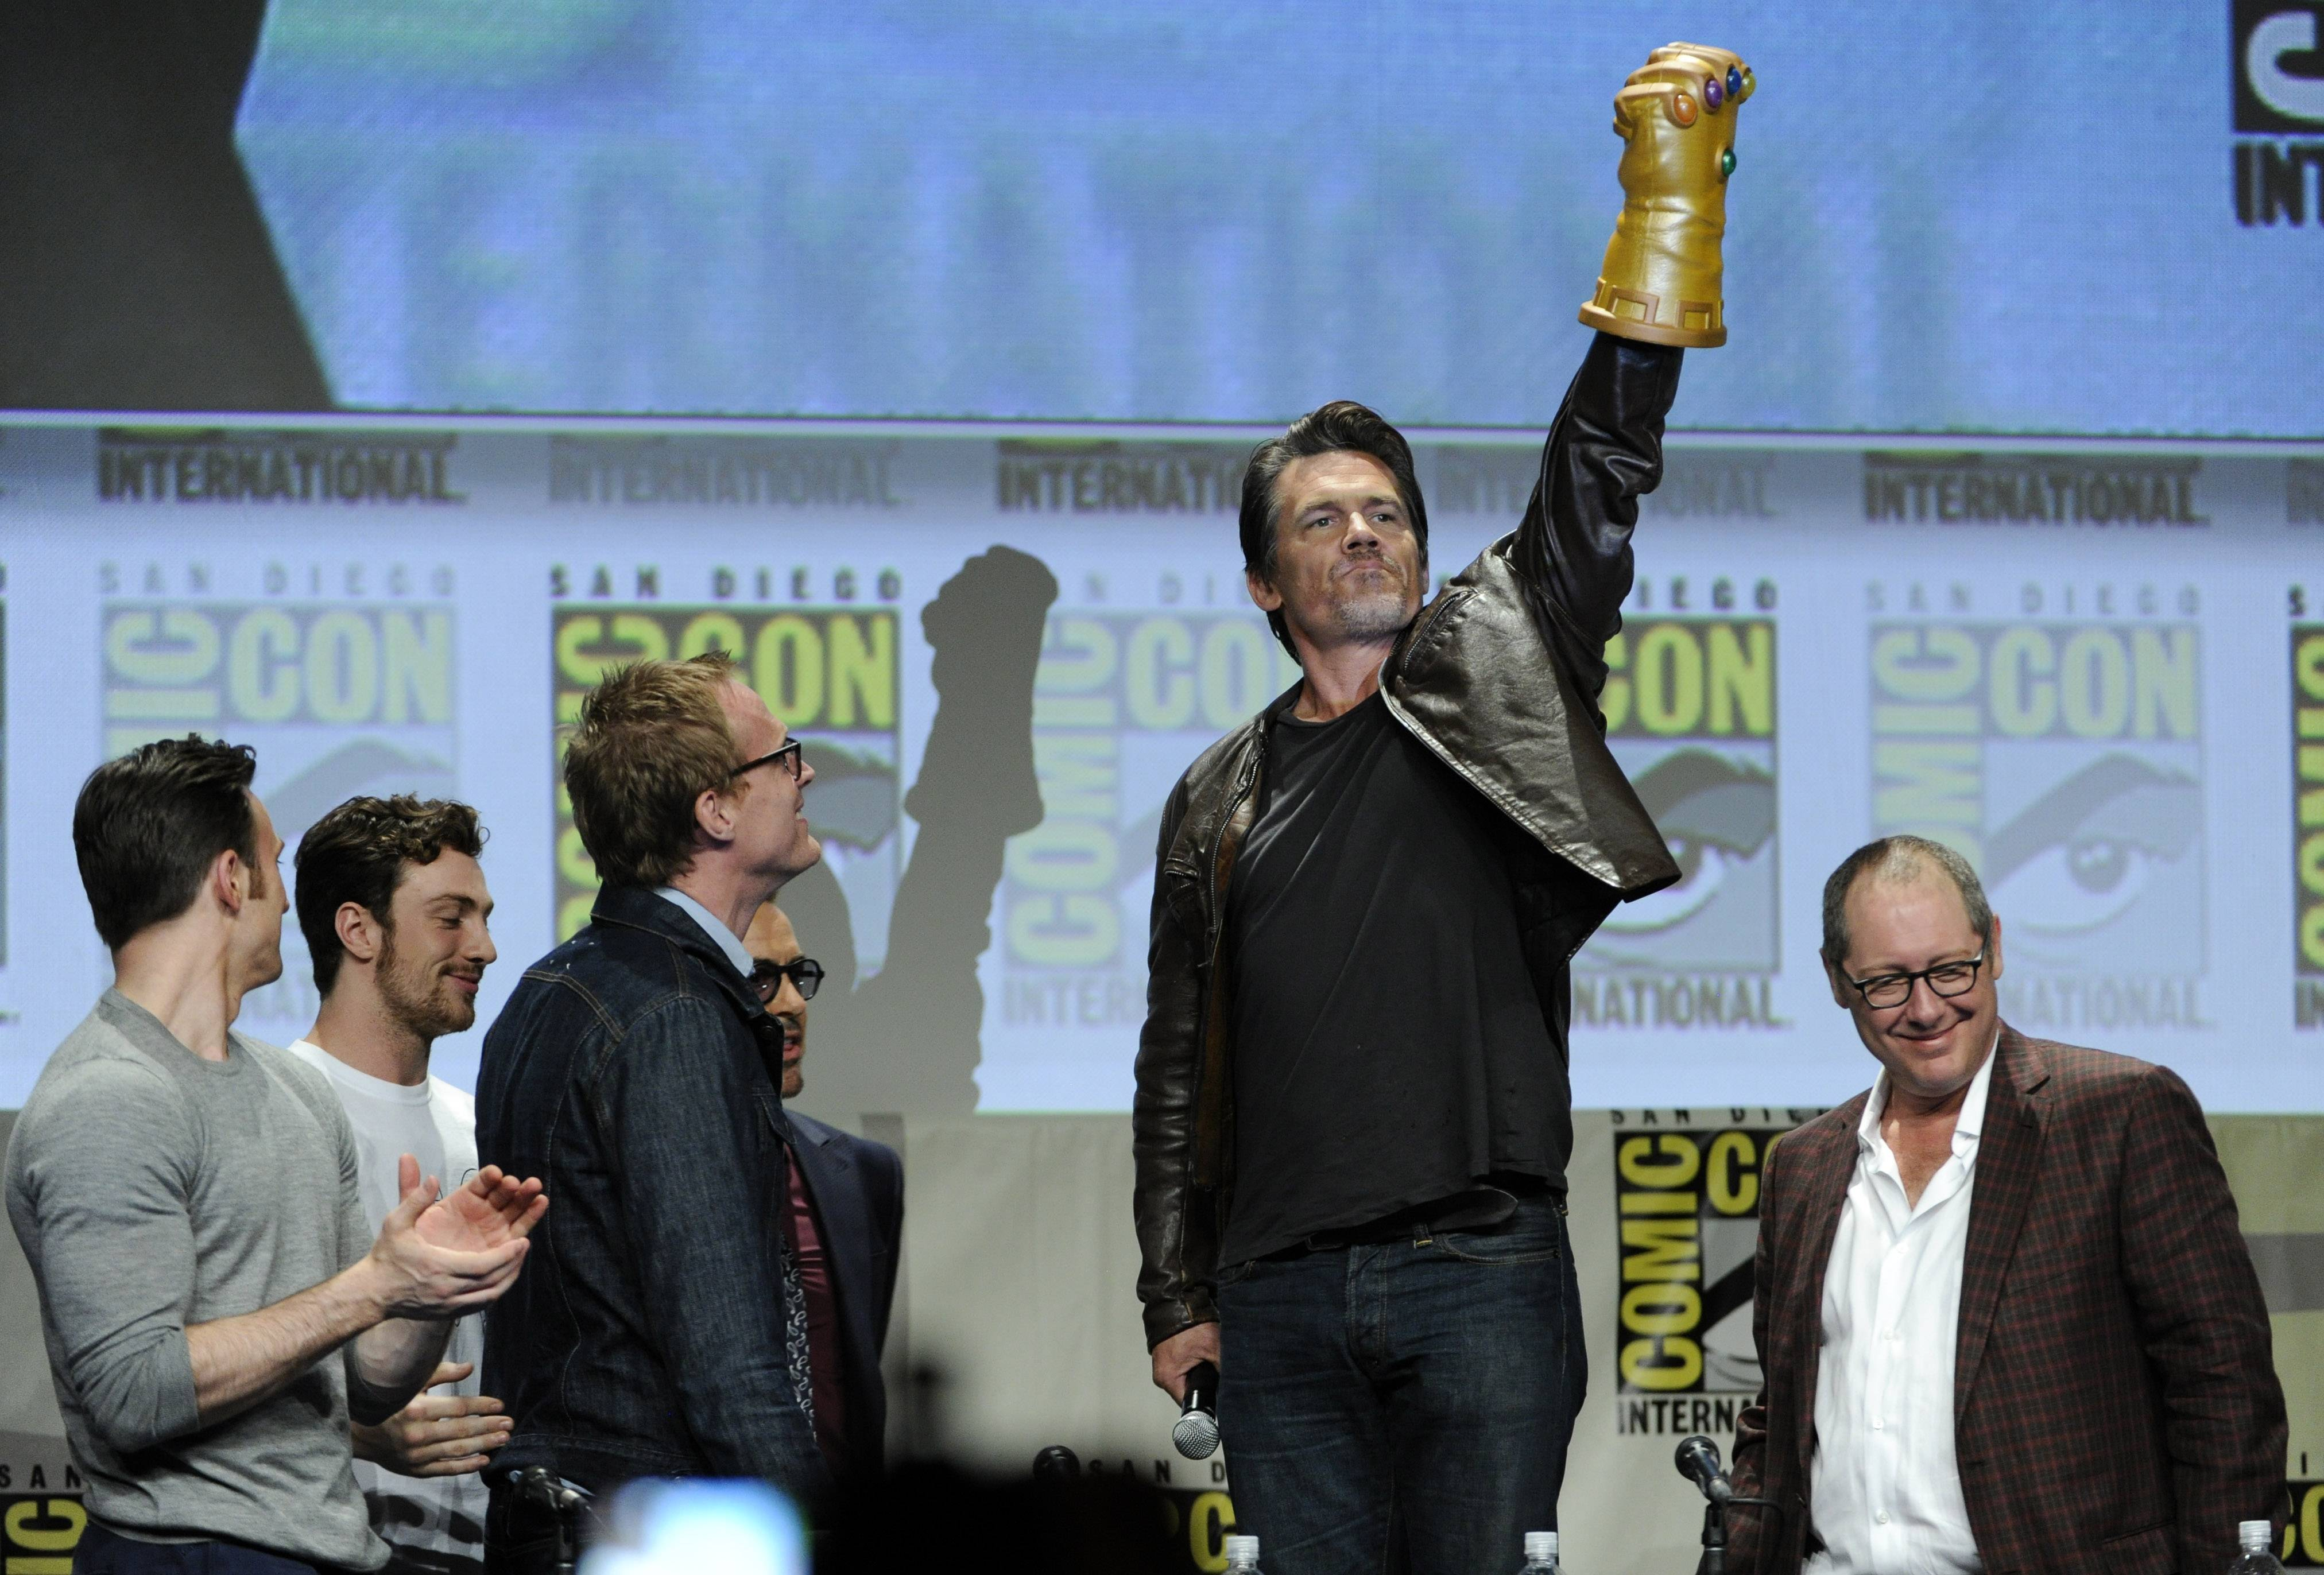 Josh Brolin, second from right, salutes as actors, from left, Chris Evans, Aaron Taylor-Johnson, Paul Bettany and James Spader stand near during the Marvel panel at Comic-Con International on Saturday in San Diego, Calif.